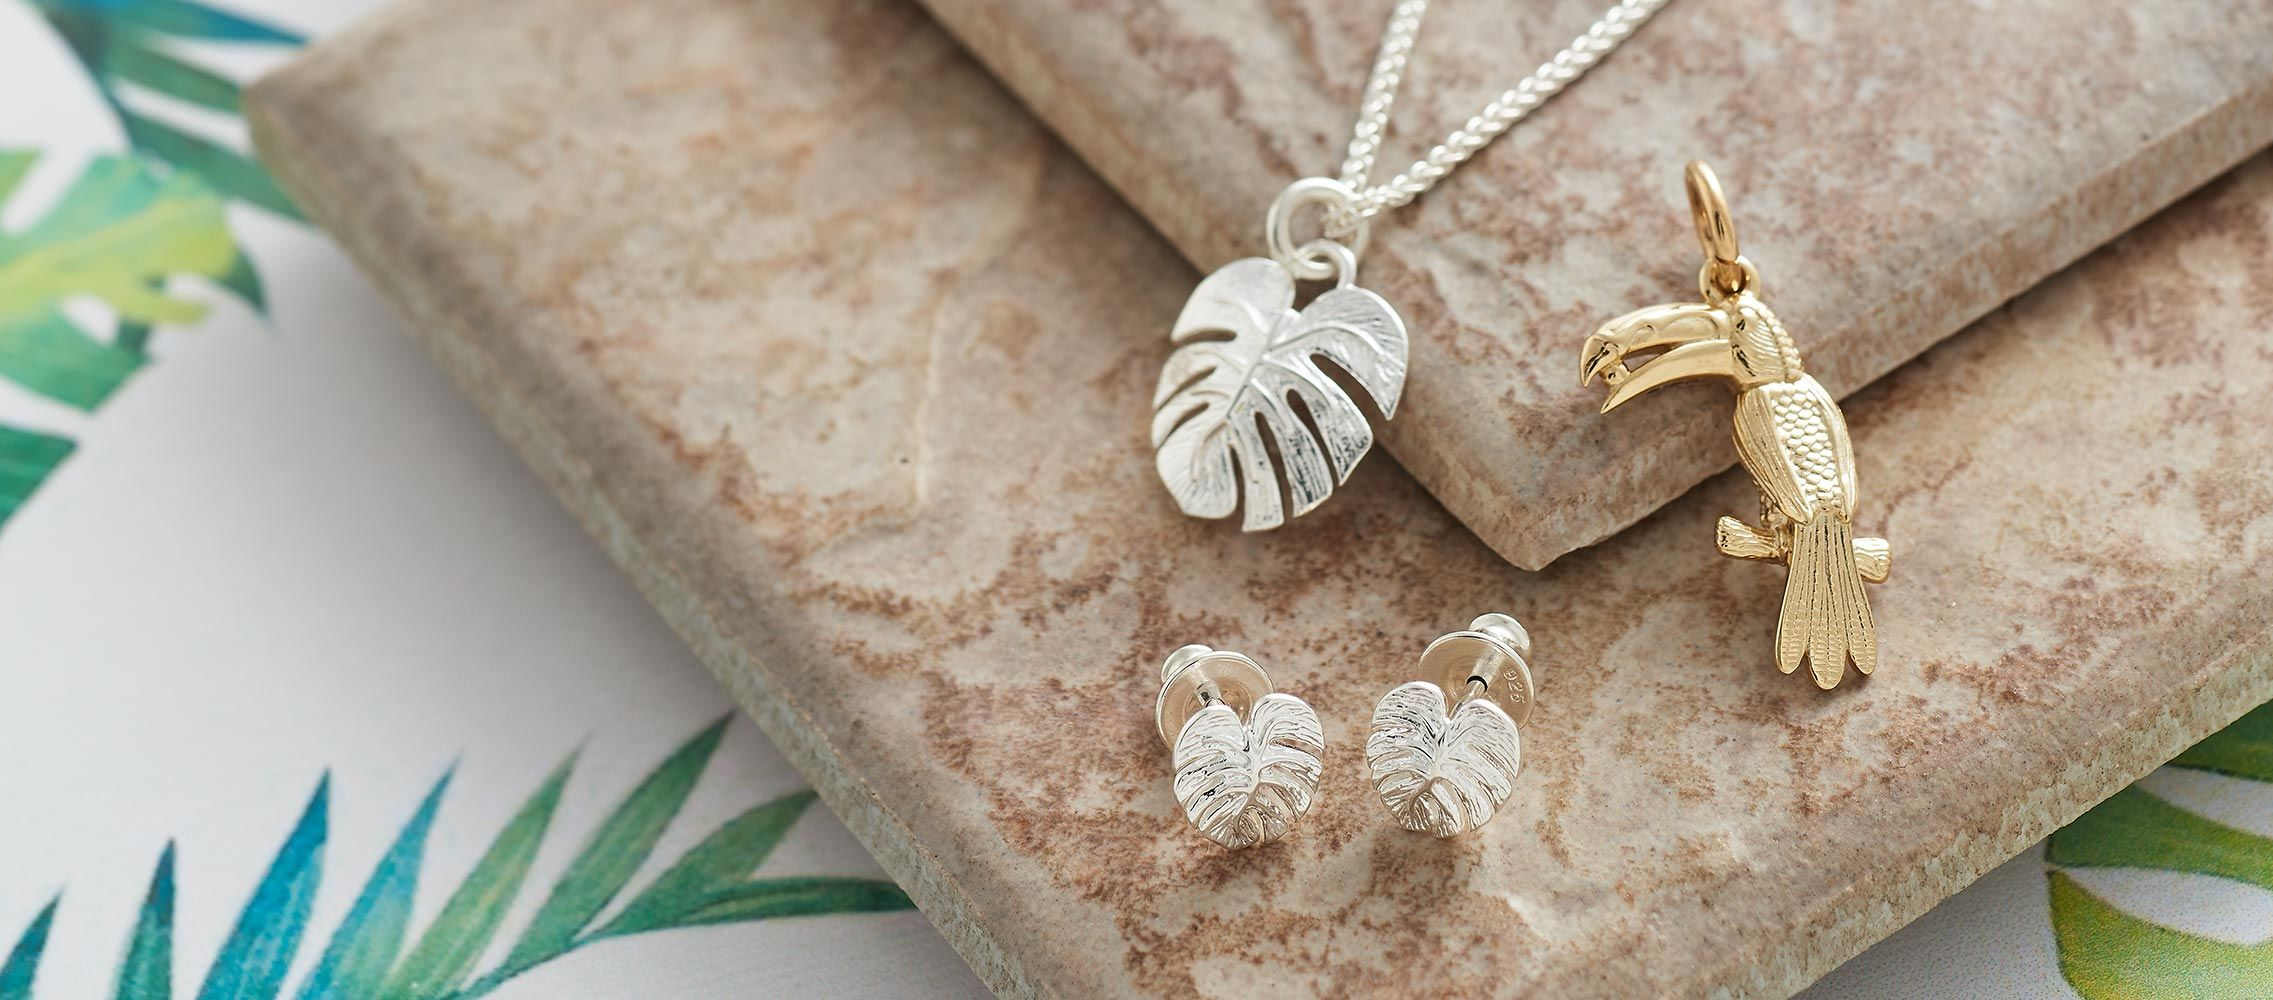 Lifestyle jewellery photograph cheese plant range